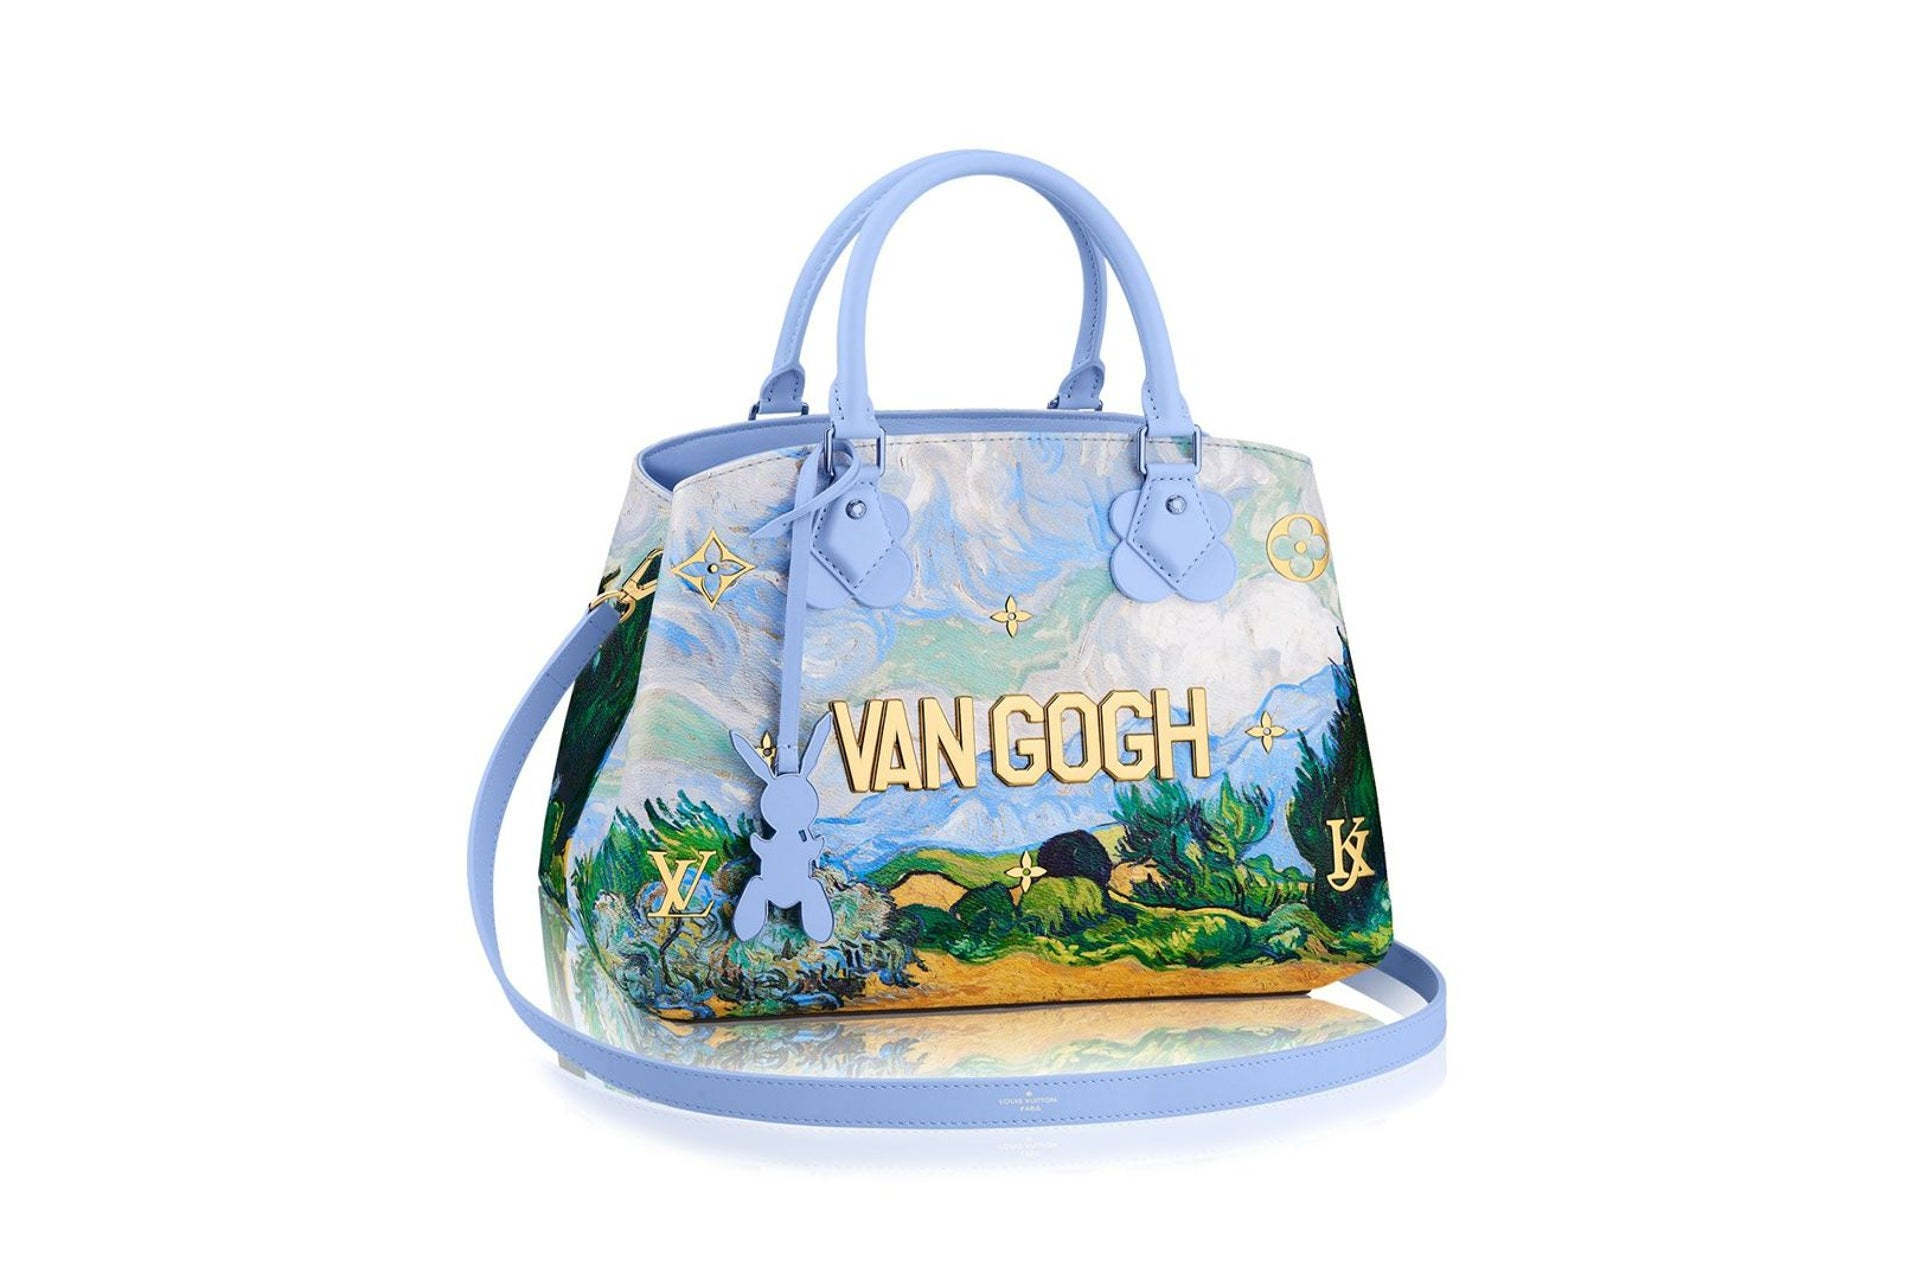 """The Van Gogh bag. This """"Neverfull MM"""" version retails for $3,200."""